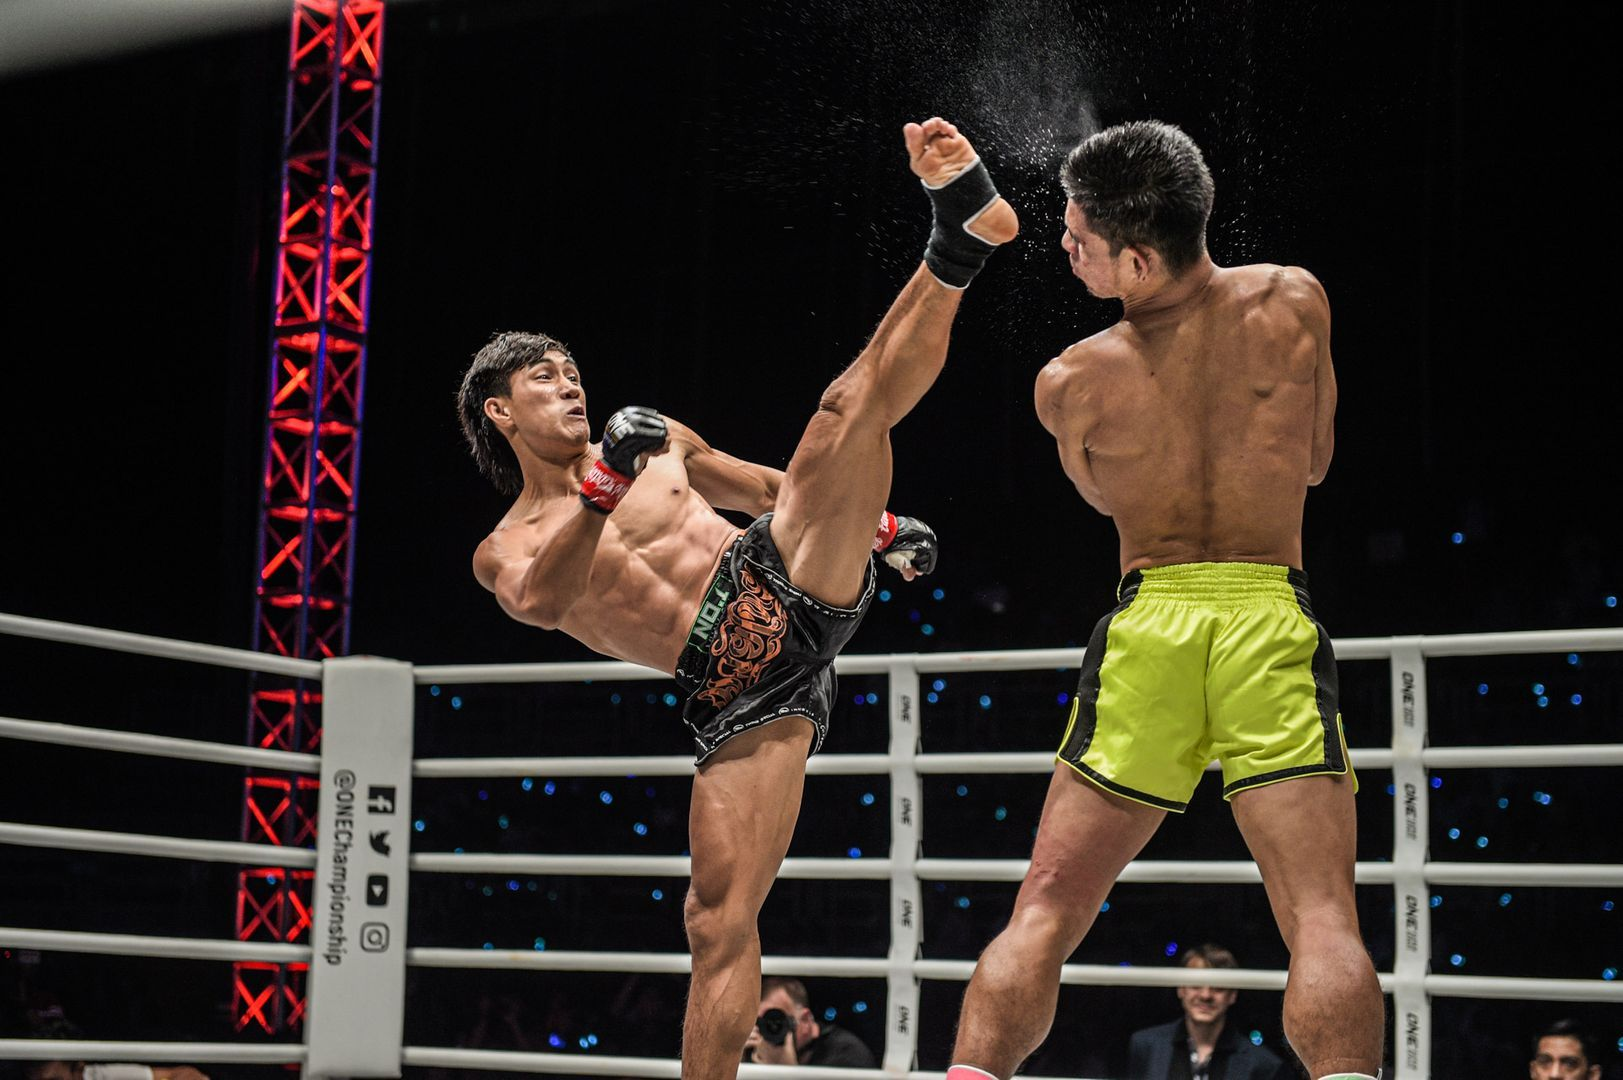 Nguyen Tran Duy Nhat lands a high kick on Azwan Che Wil at ONE: IMMORTAL TRIUMPH